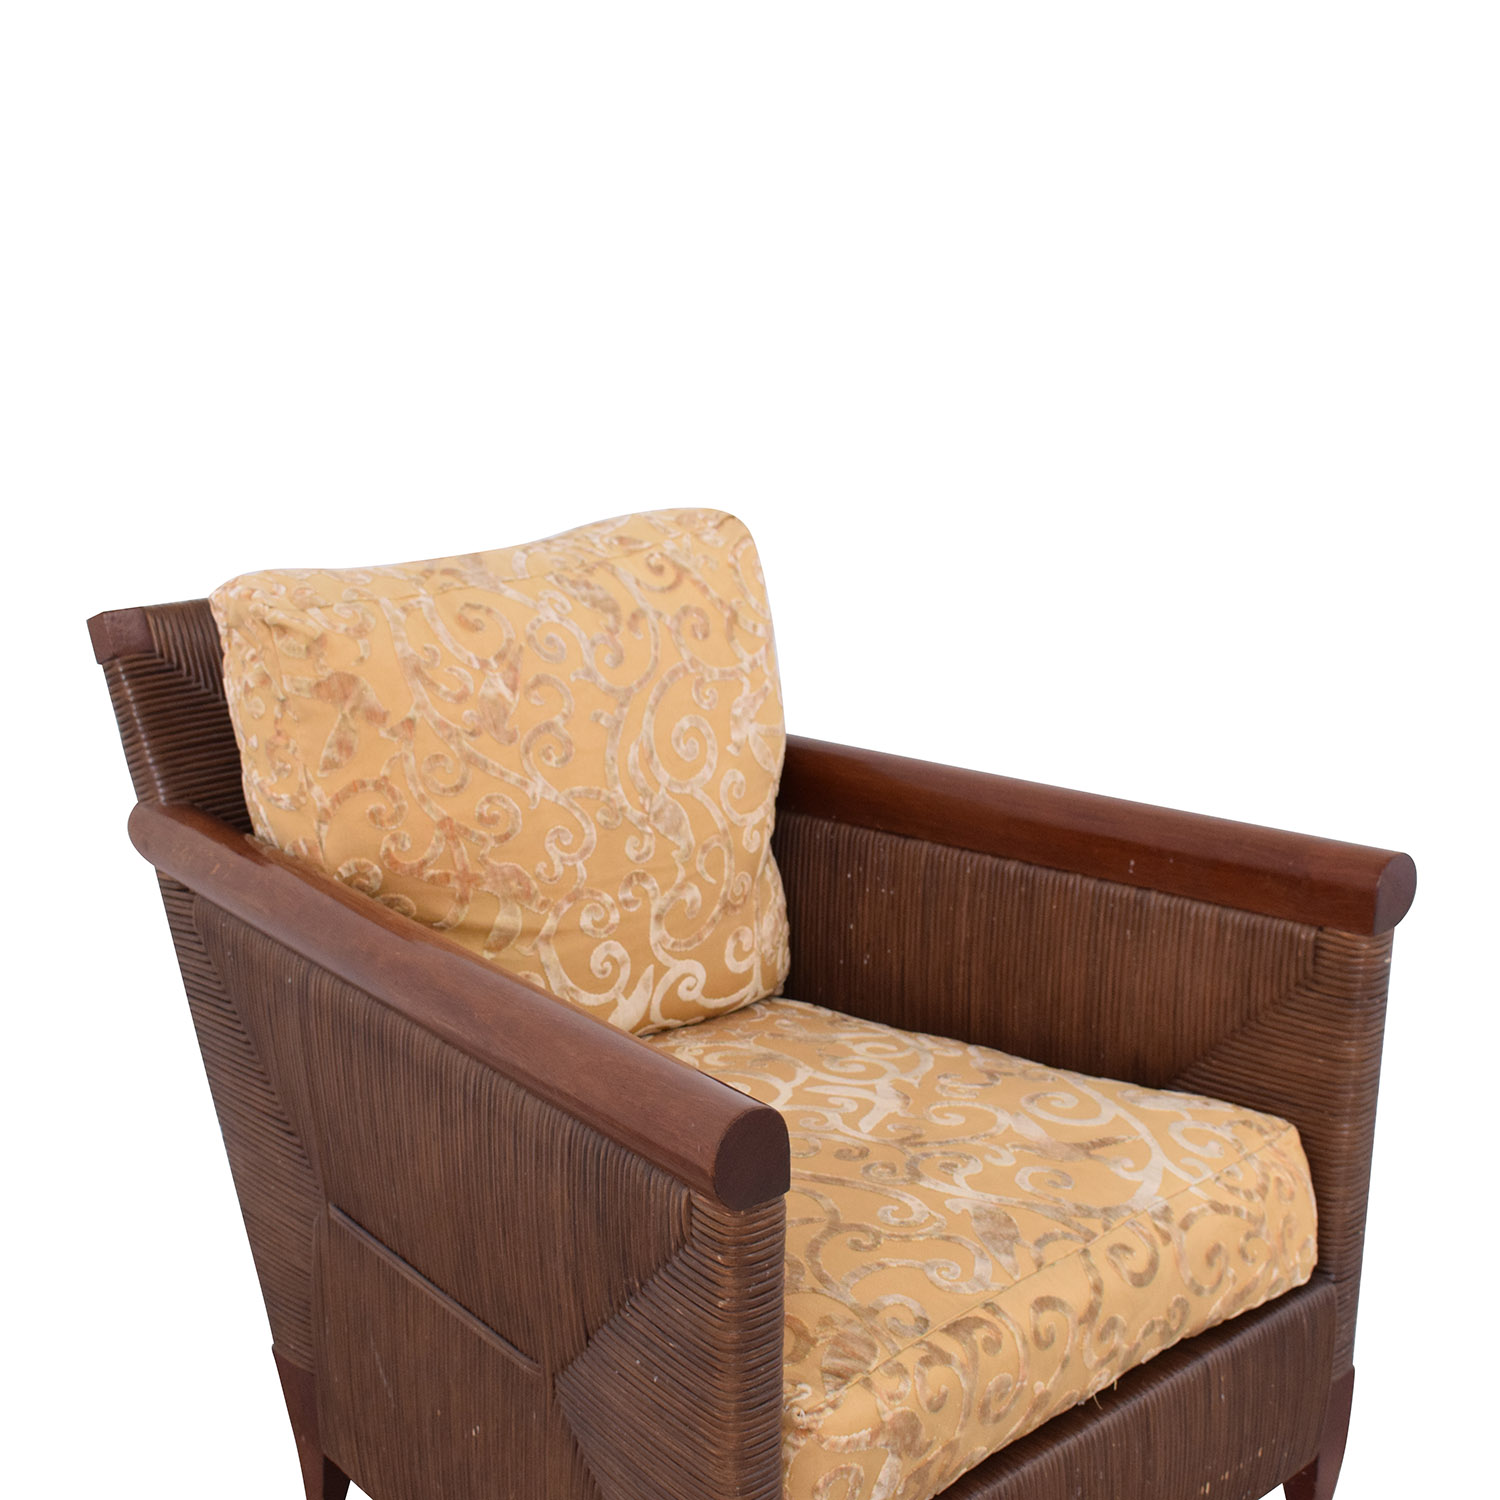 buy Donghia by John Hutton Mahogany and Wicker Lounger Donghia